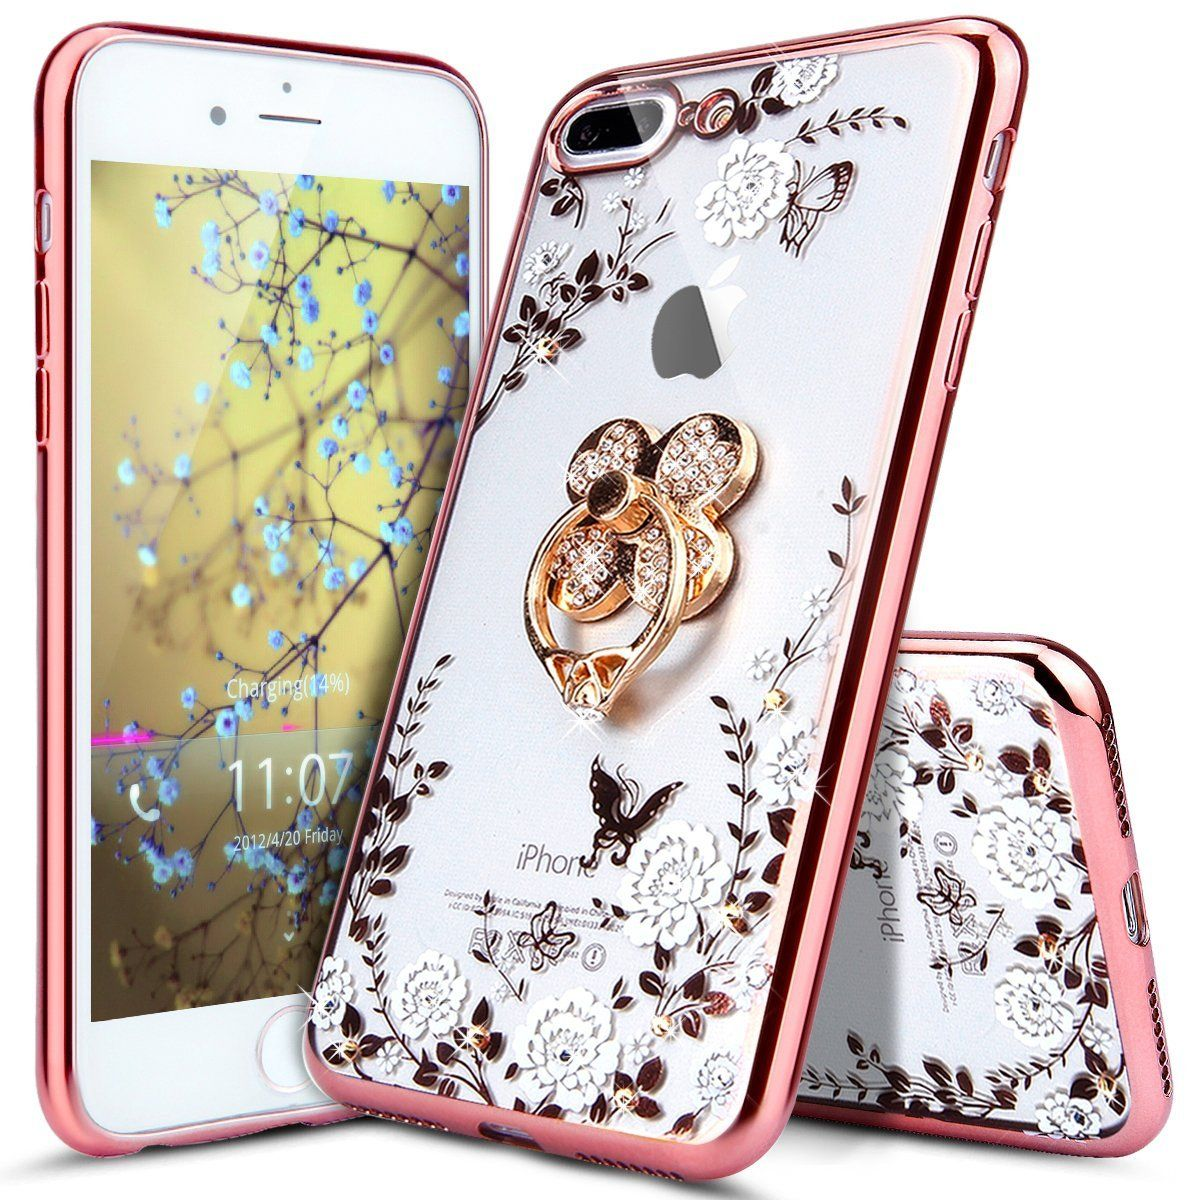 Iphone 8 Plus Case Iphone 7 Plus Case Ikasus Glitter Crystal Plating Butterfly Floral Bling Diamond Rhinestone White Rose Gold Rose Gold Butterfly Clover Ring